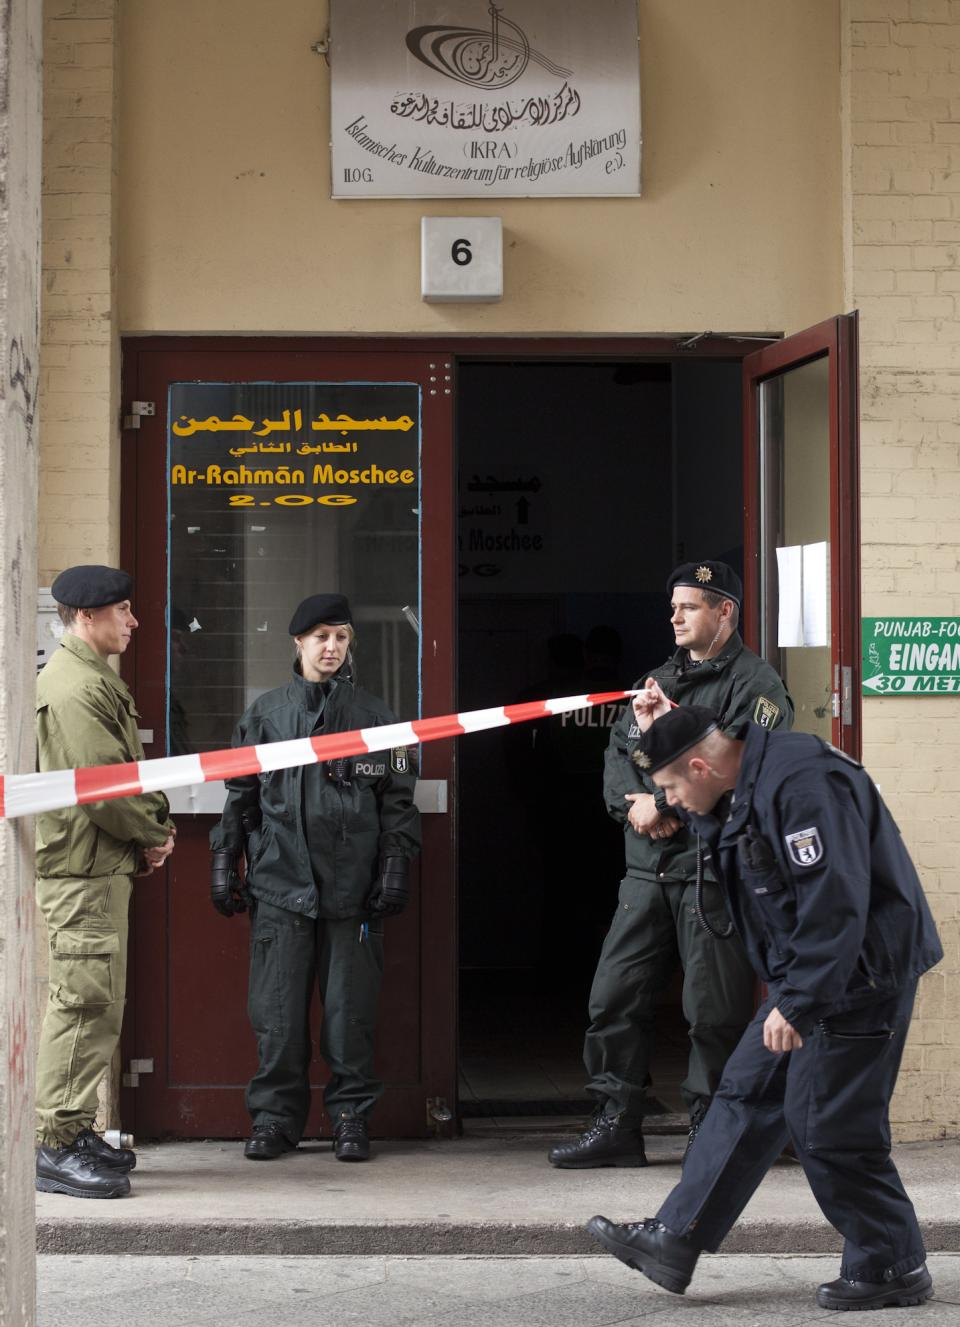 German police officers guard the entrance of an Islamic cultural center as they search it in Berlin, Thursday, Sept. 8, 2011. German police on Thursday detained two men suspected of obtaining potential ingredients for a bomb and searched an Islamic center where the pair had spent time. (AP Photo/Markus Schreiber)